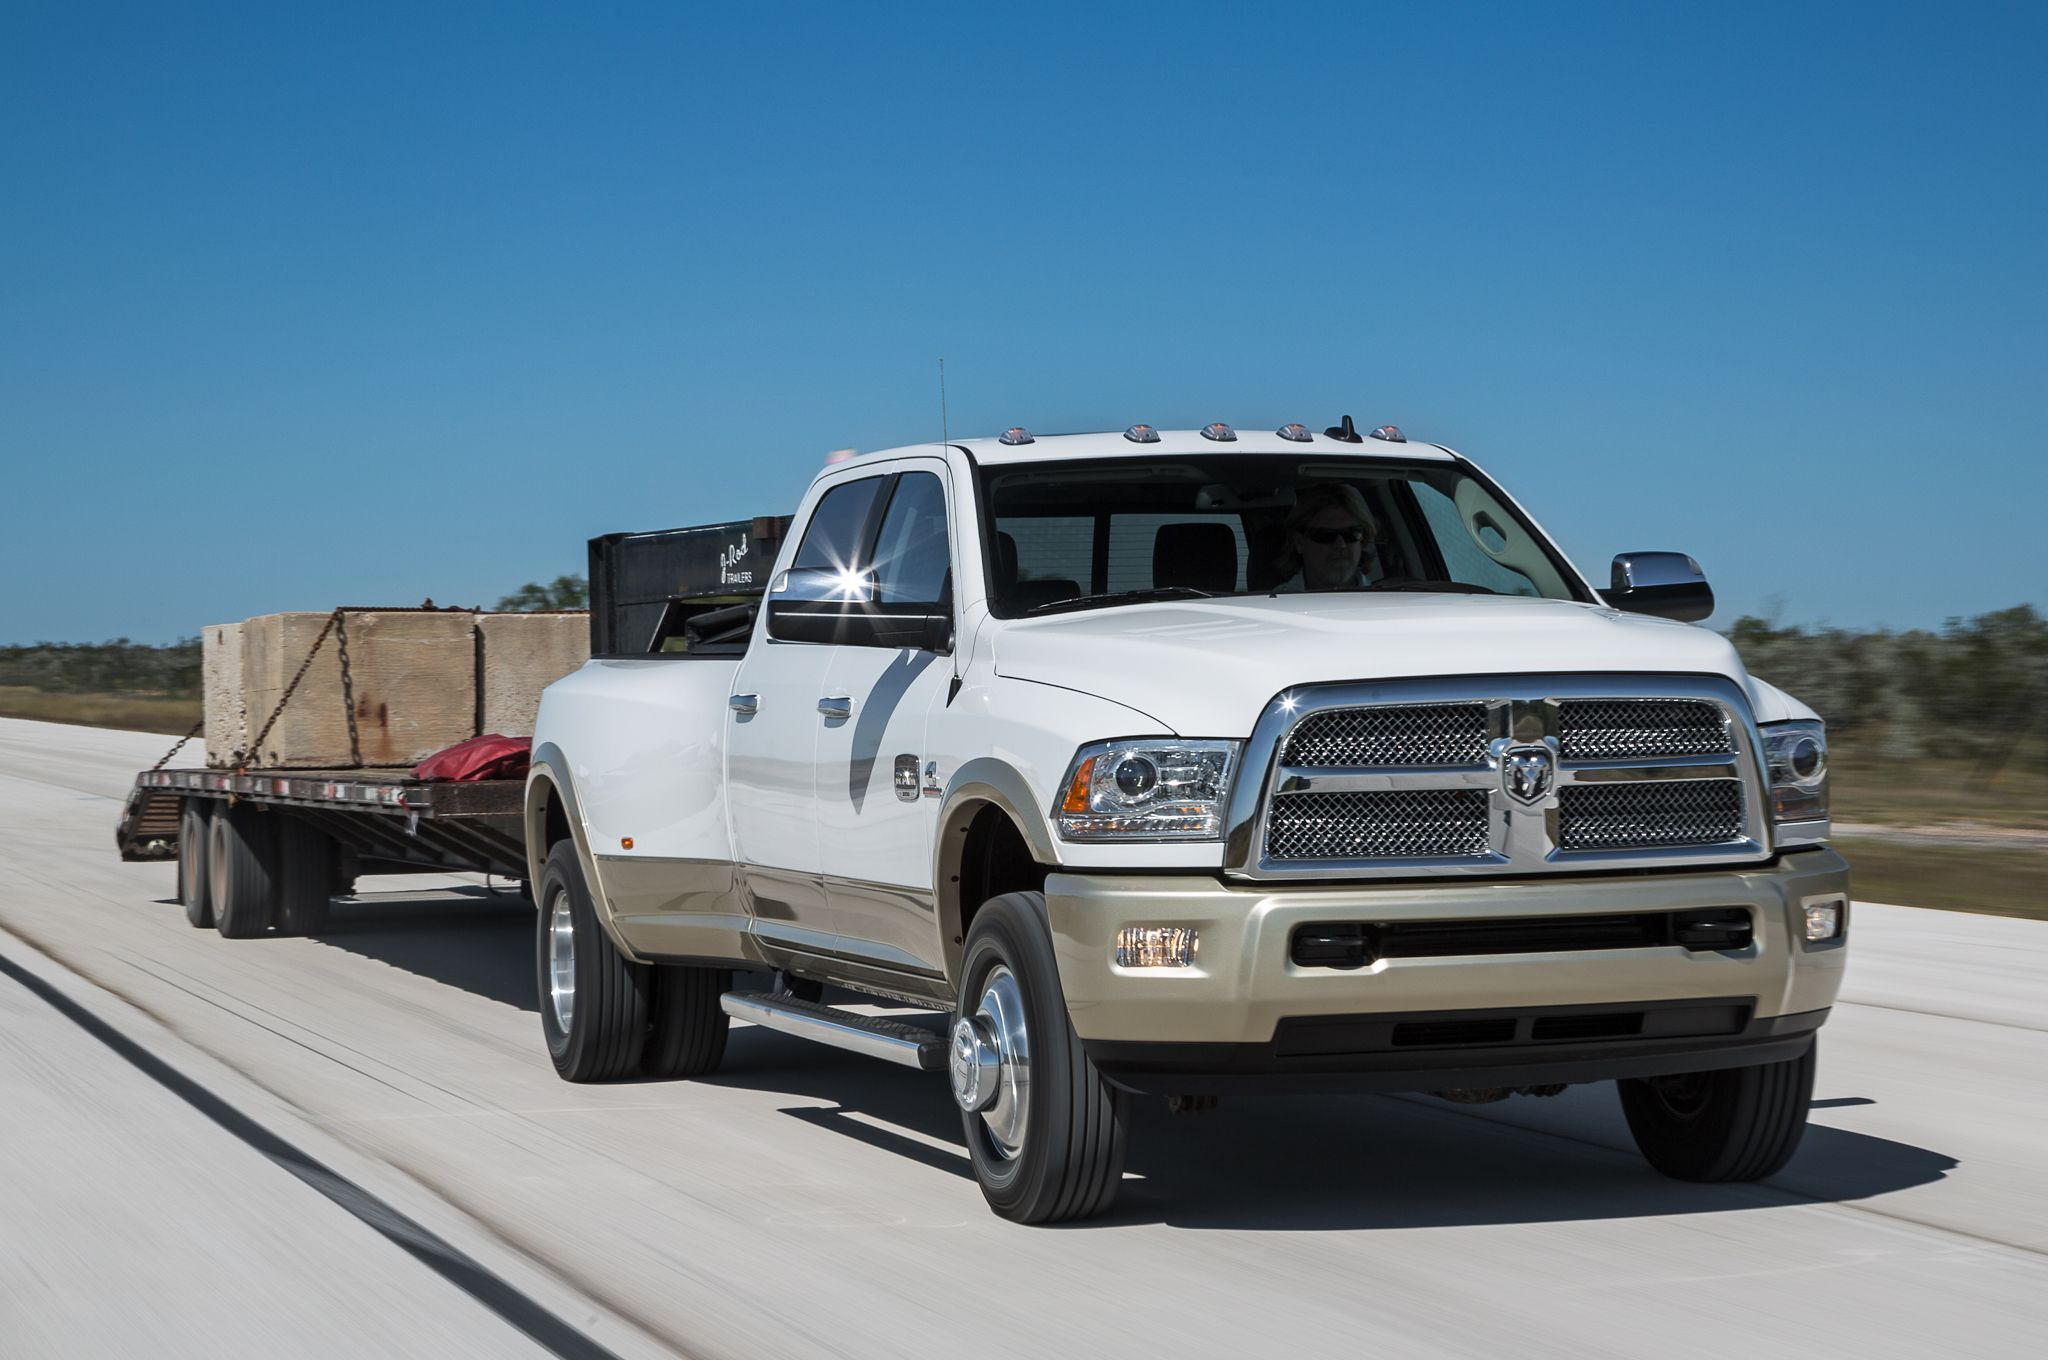 2014 Ram 3500 Laramie Longhorn Front view towing